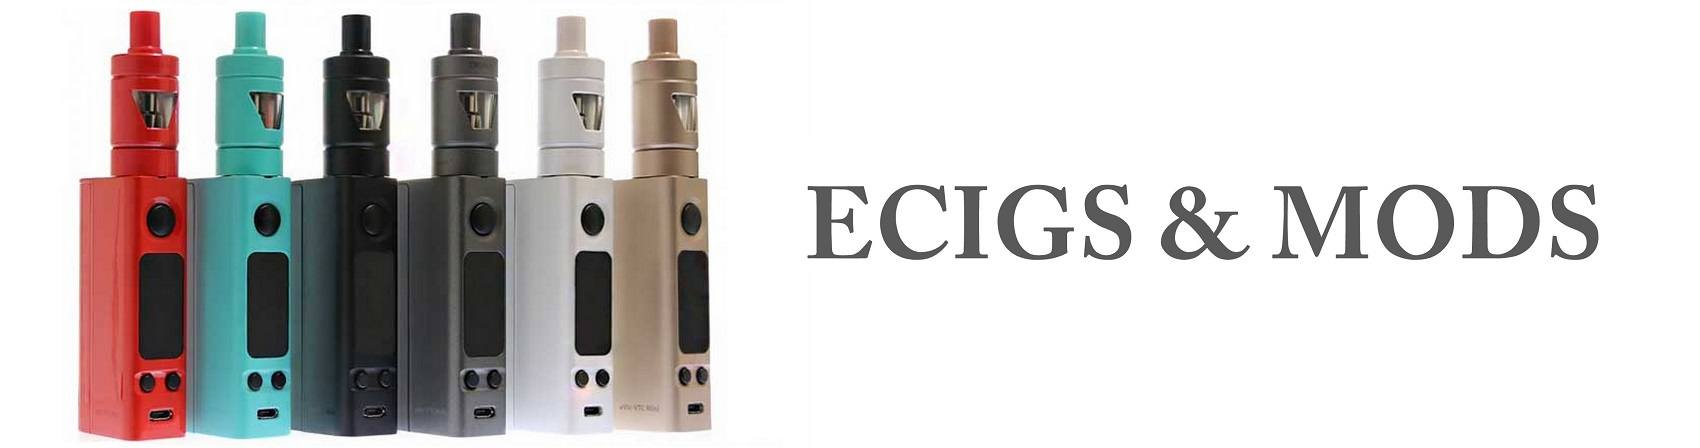 Best Vape Mods and Ecig Starter Kits